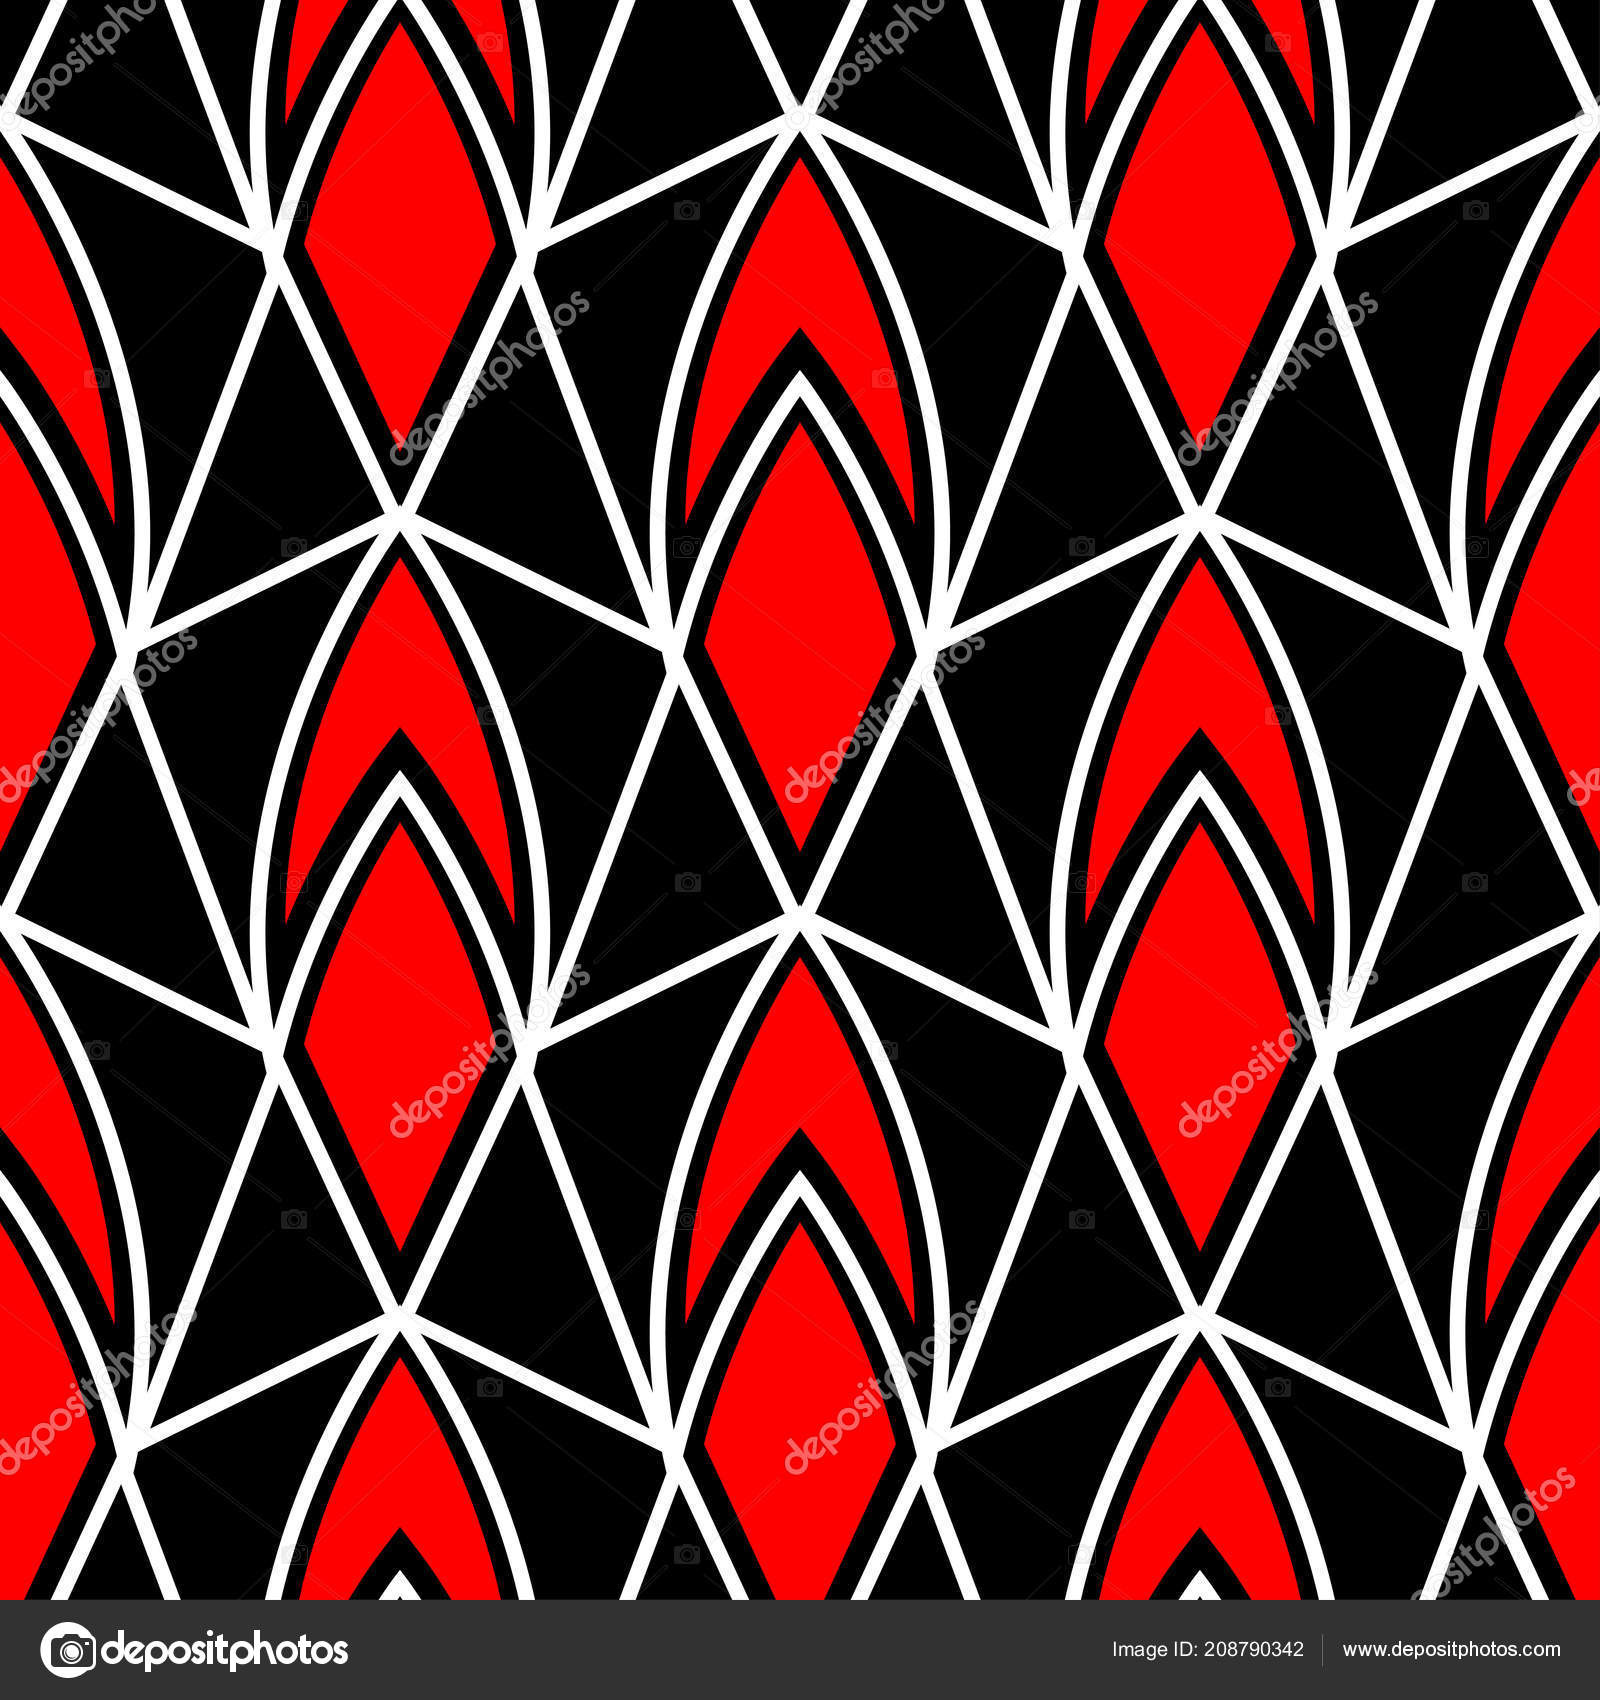 Red White Black Wallpaper Geometric Seamless Pattern Red White